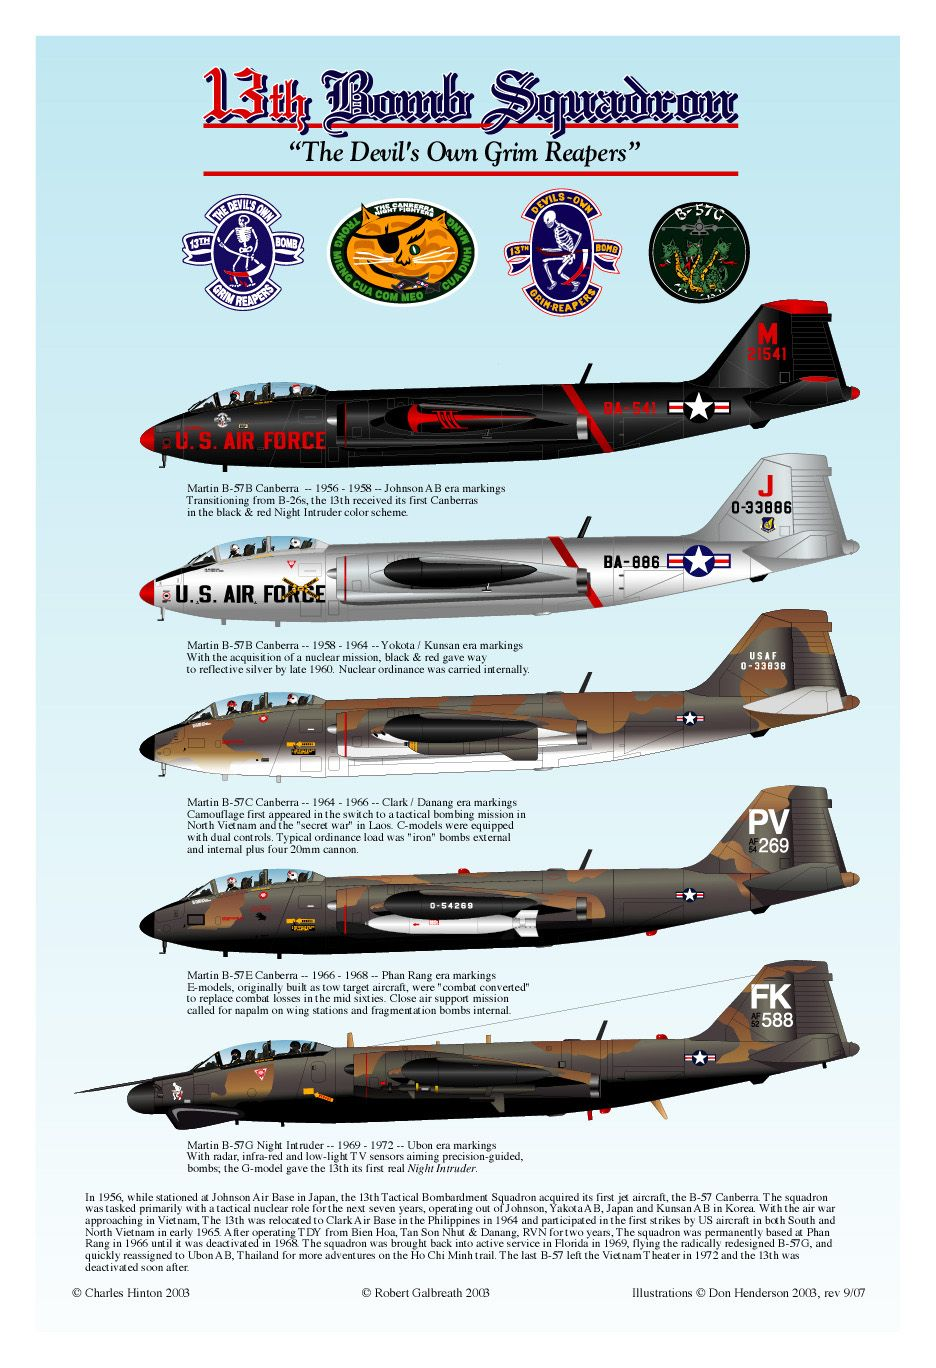 B-57 Canberras of the 13th Bomb Squadron  | Flight in many